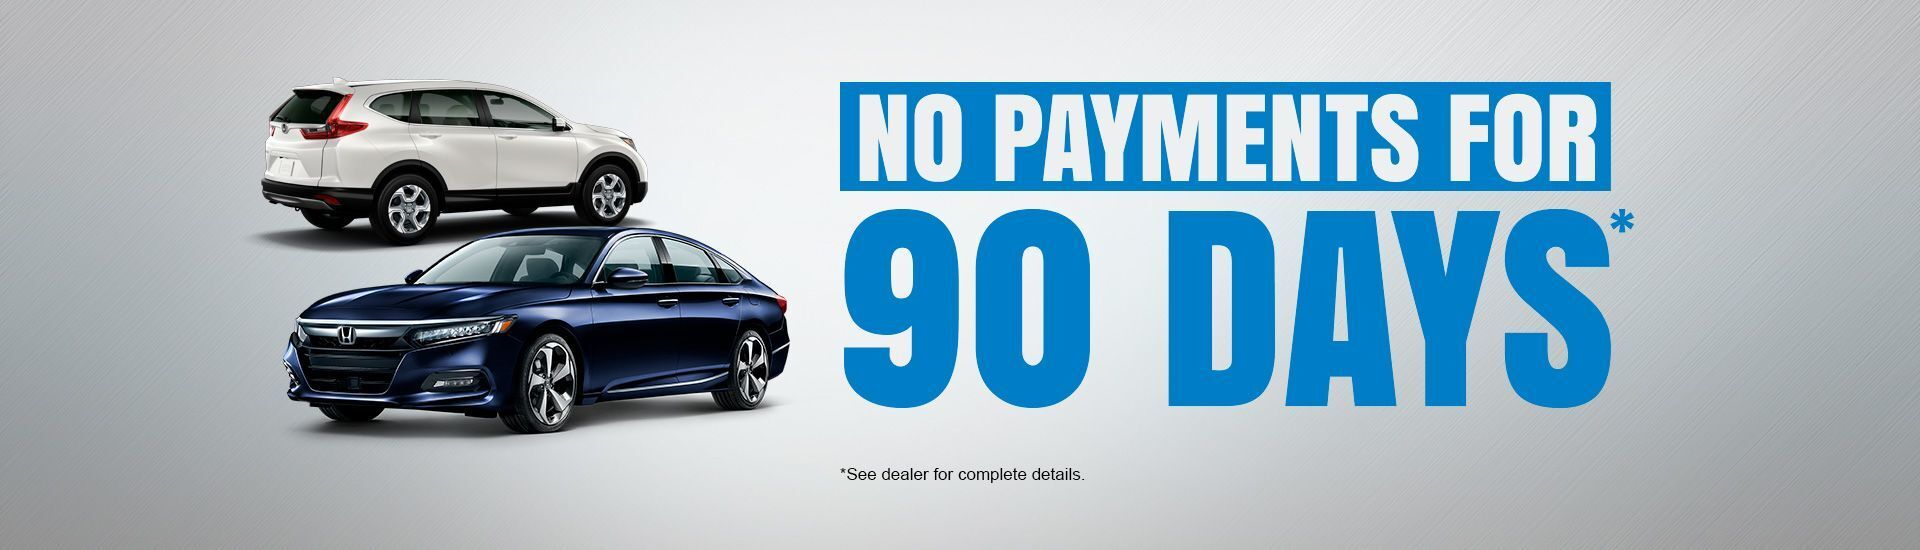 90 Days No payments